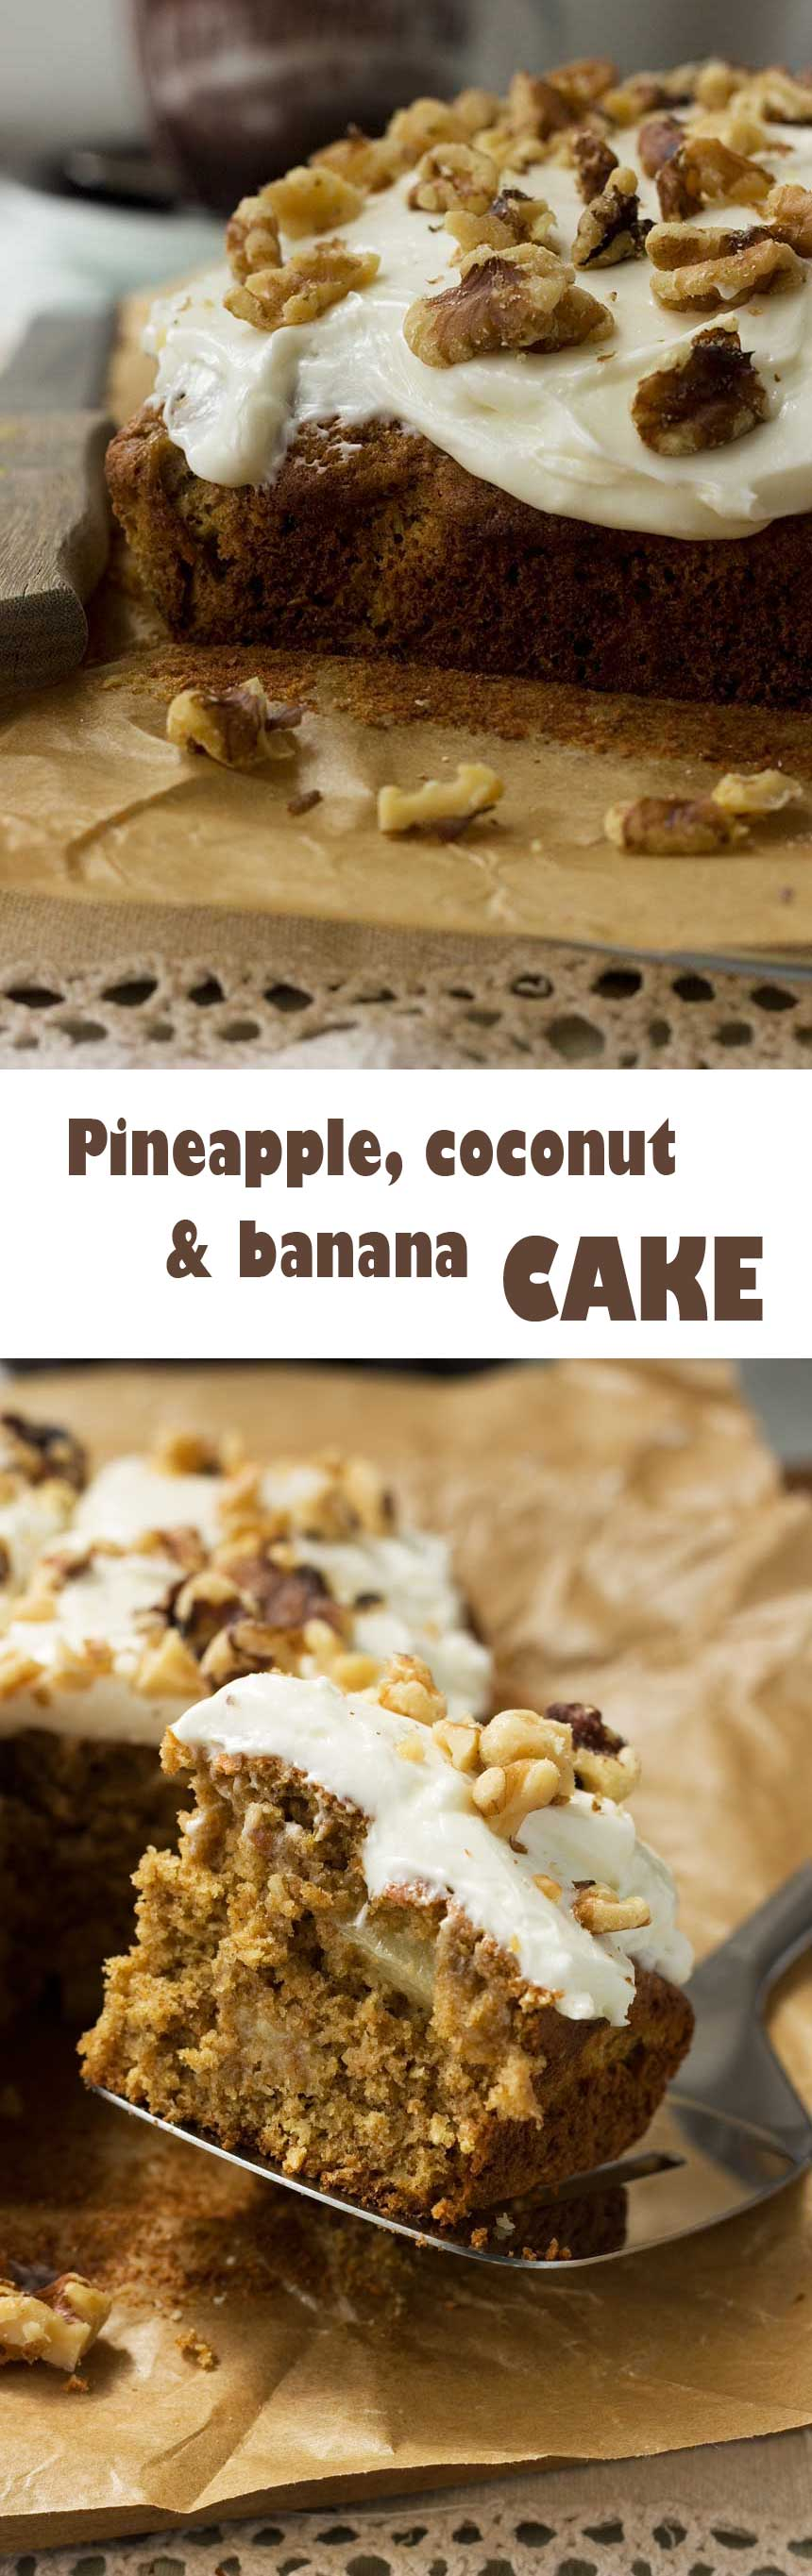 Pineapple, coconut and banana cake - like carrot cake with a tropical twist!